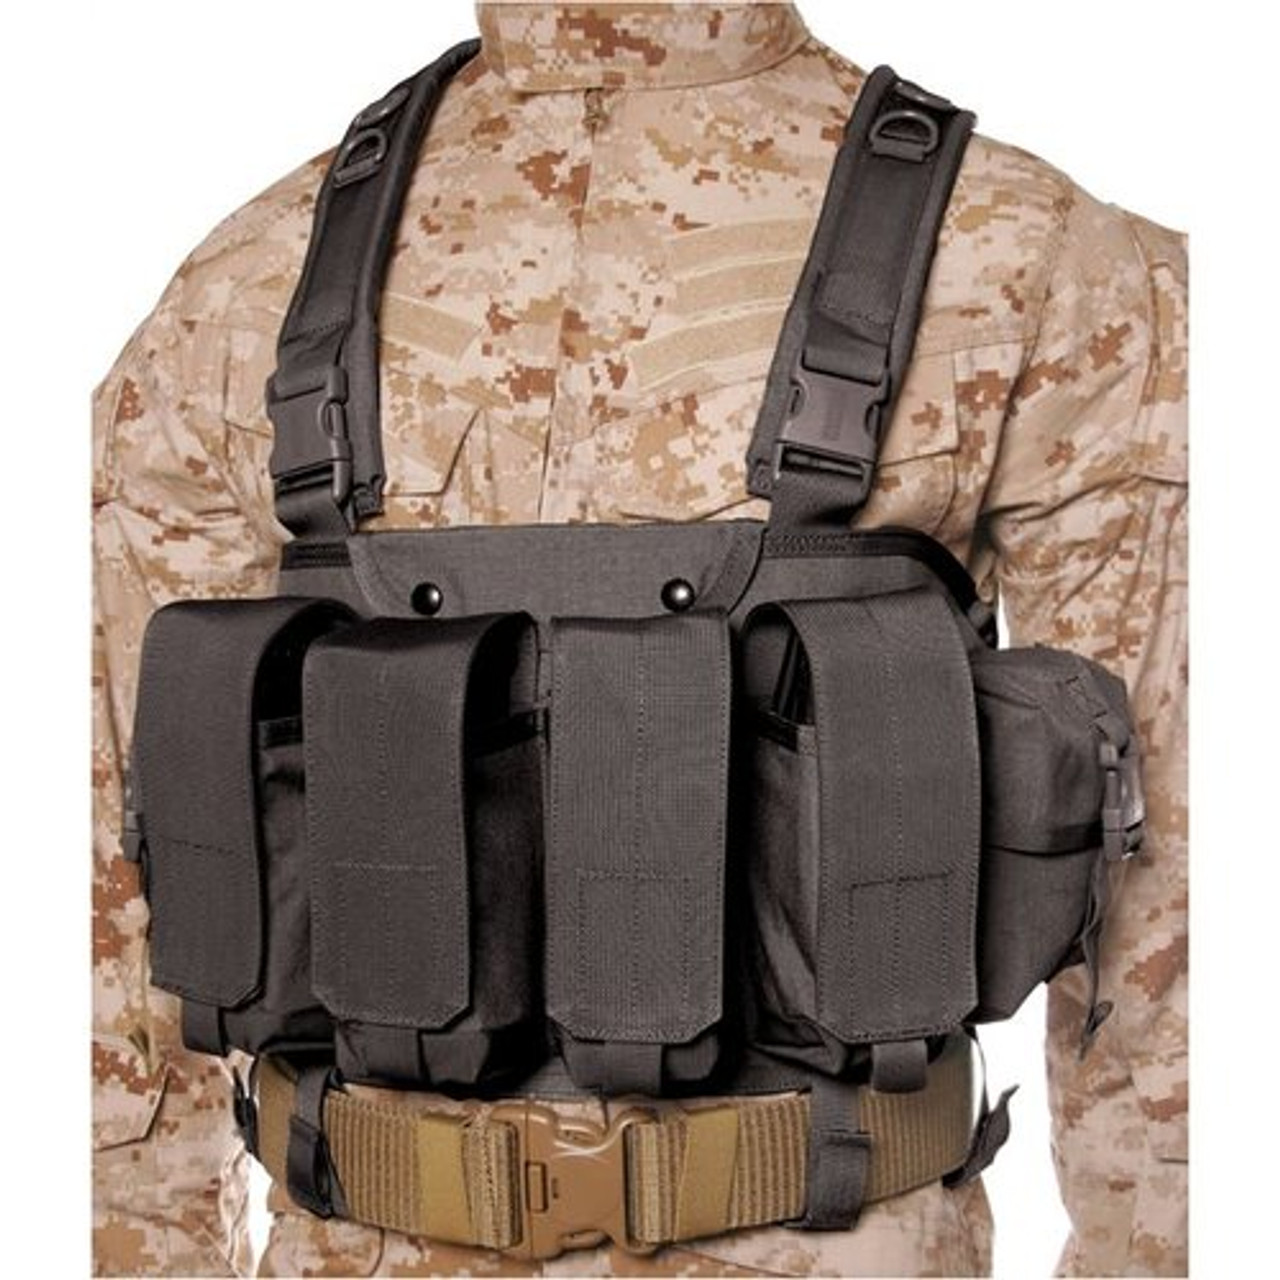 BLACKHAWK COMMANDO CHEST HARNESS, Adjustable quick-release waist strap,  Four ammo pouches hold two AK-47, three M16 or two M14 magazines each, Belt